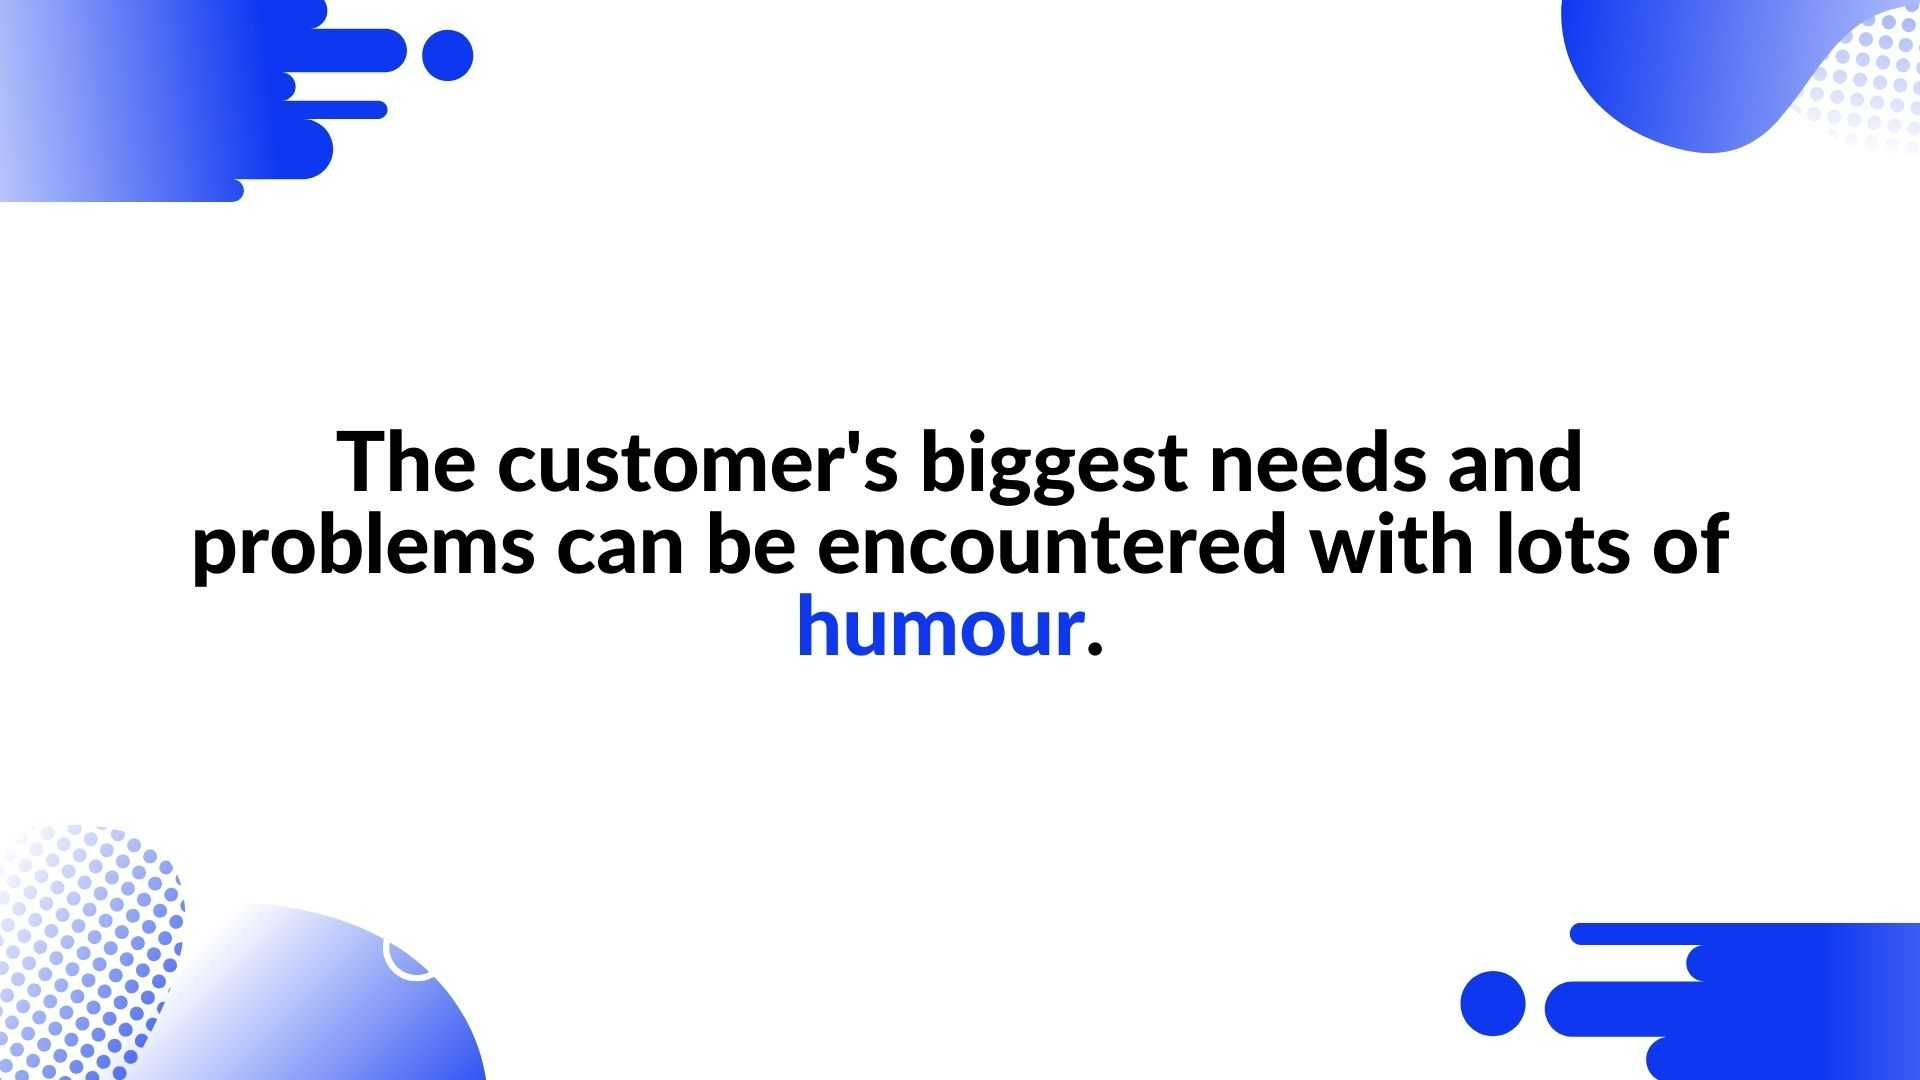 The customer's biggest needs and problems can be encountered with lots of humour - the magical power of animated videos